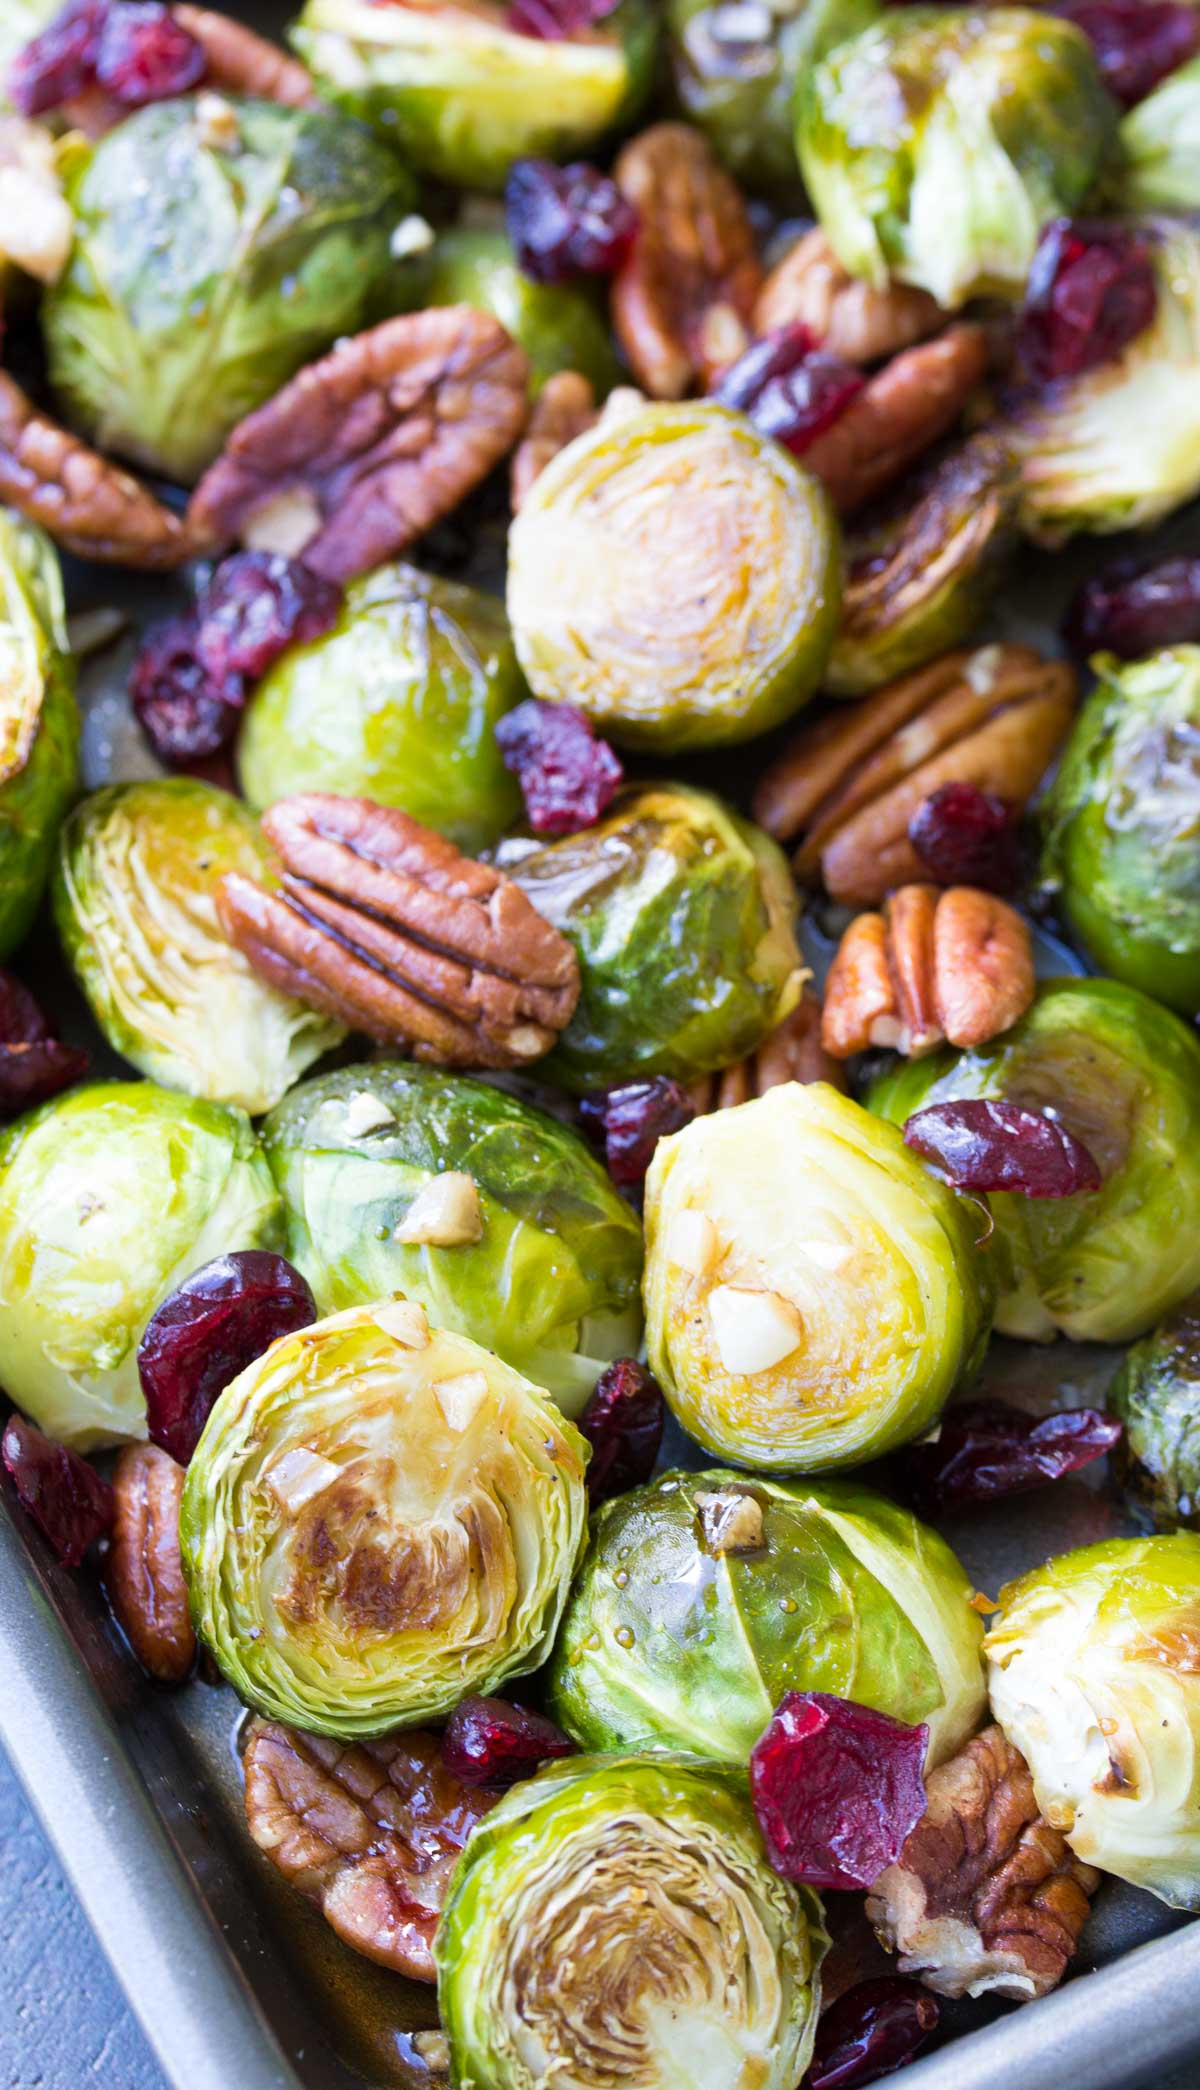 Balsamic Brussels Sprouts with garlic, pecans, cranberries and maple balsamic glaze on a baking pan.